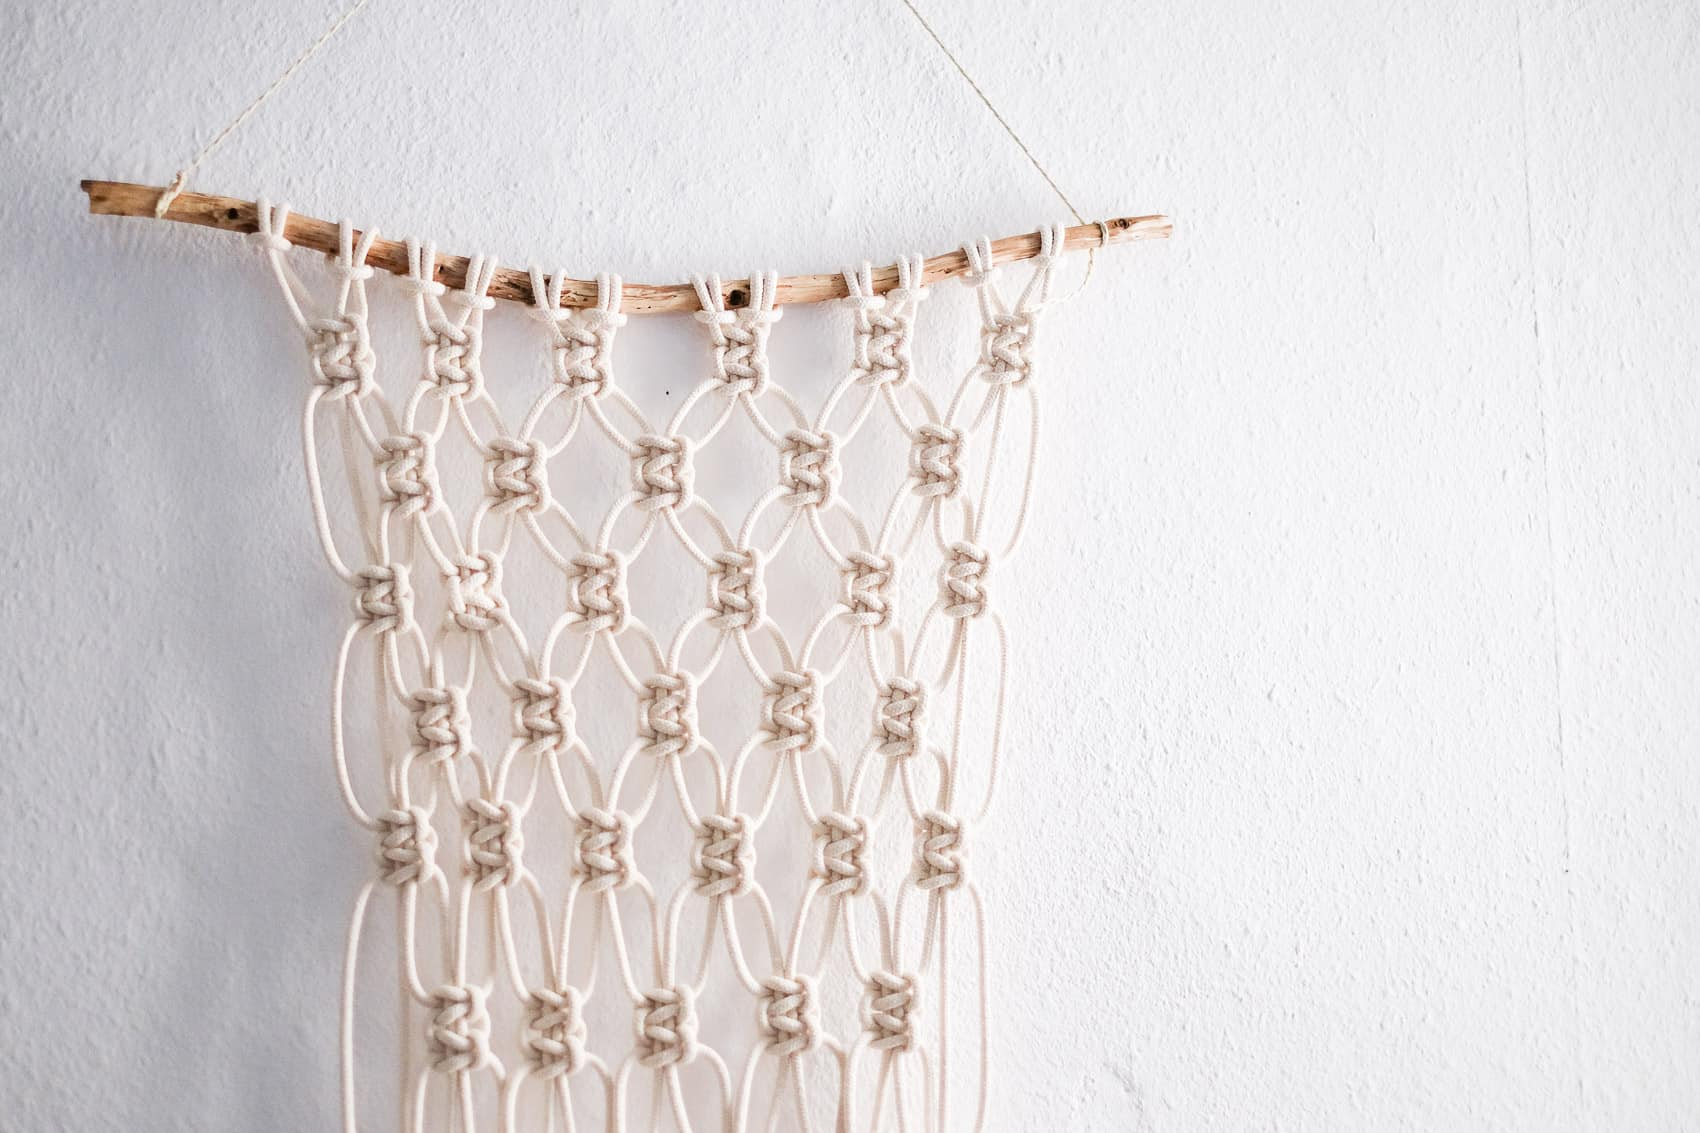 Super easy loosely knotted macrame wall hanging